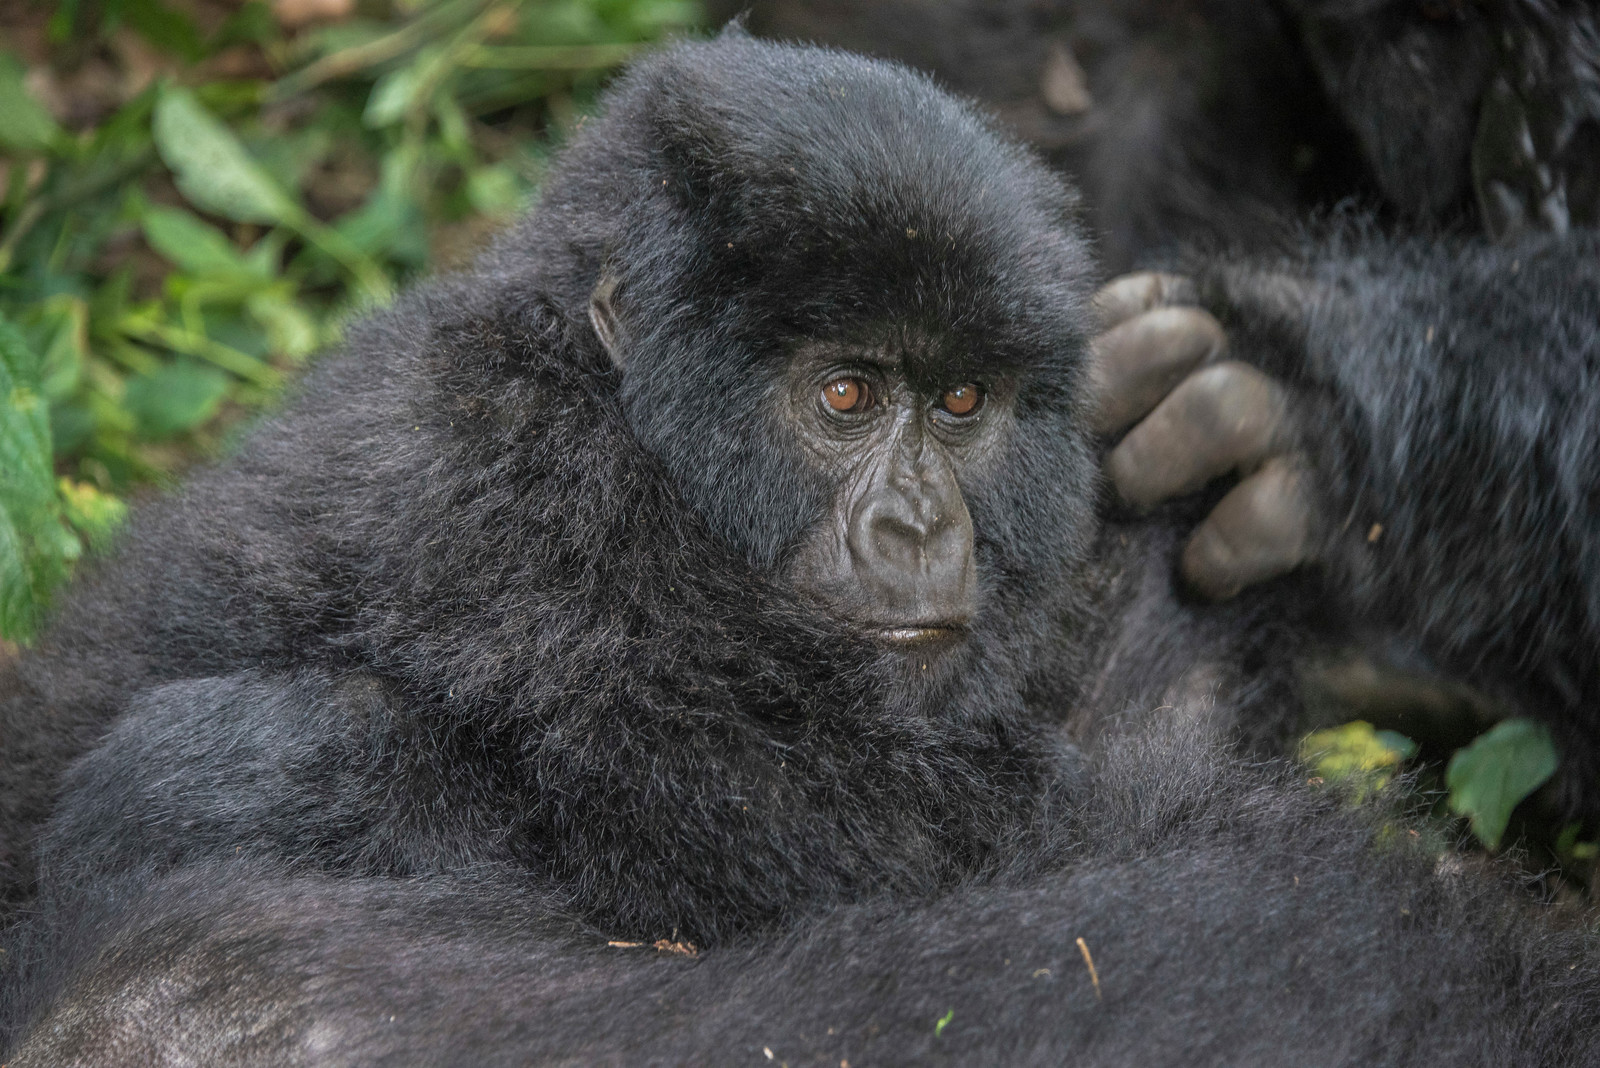 Gorilla-in-thought-GOR_0326